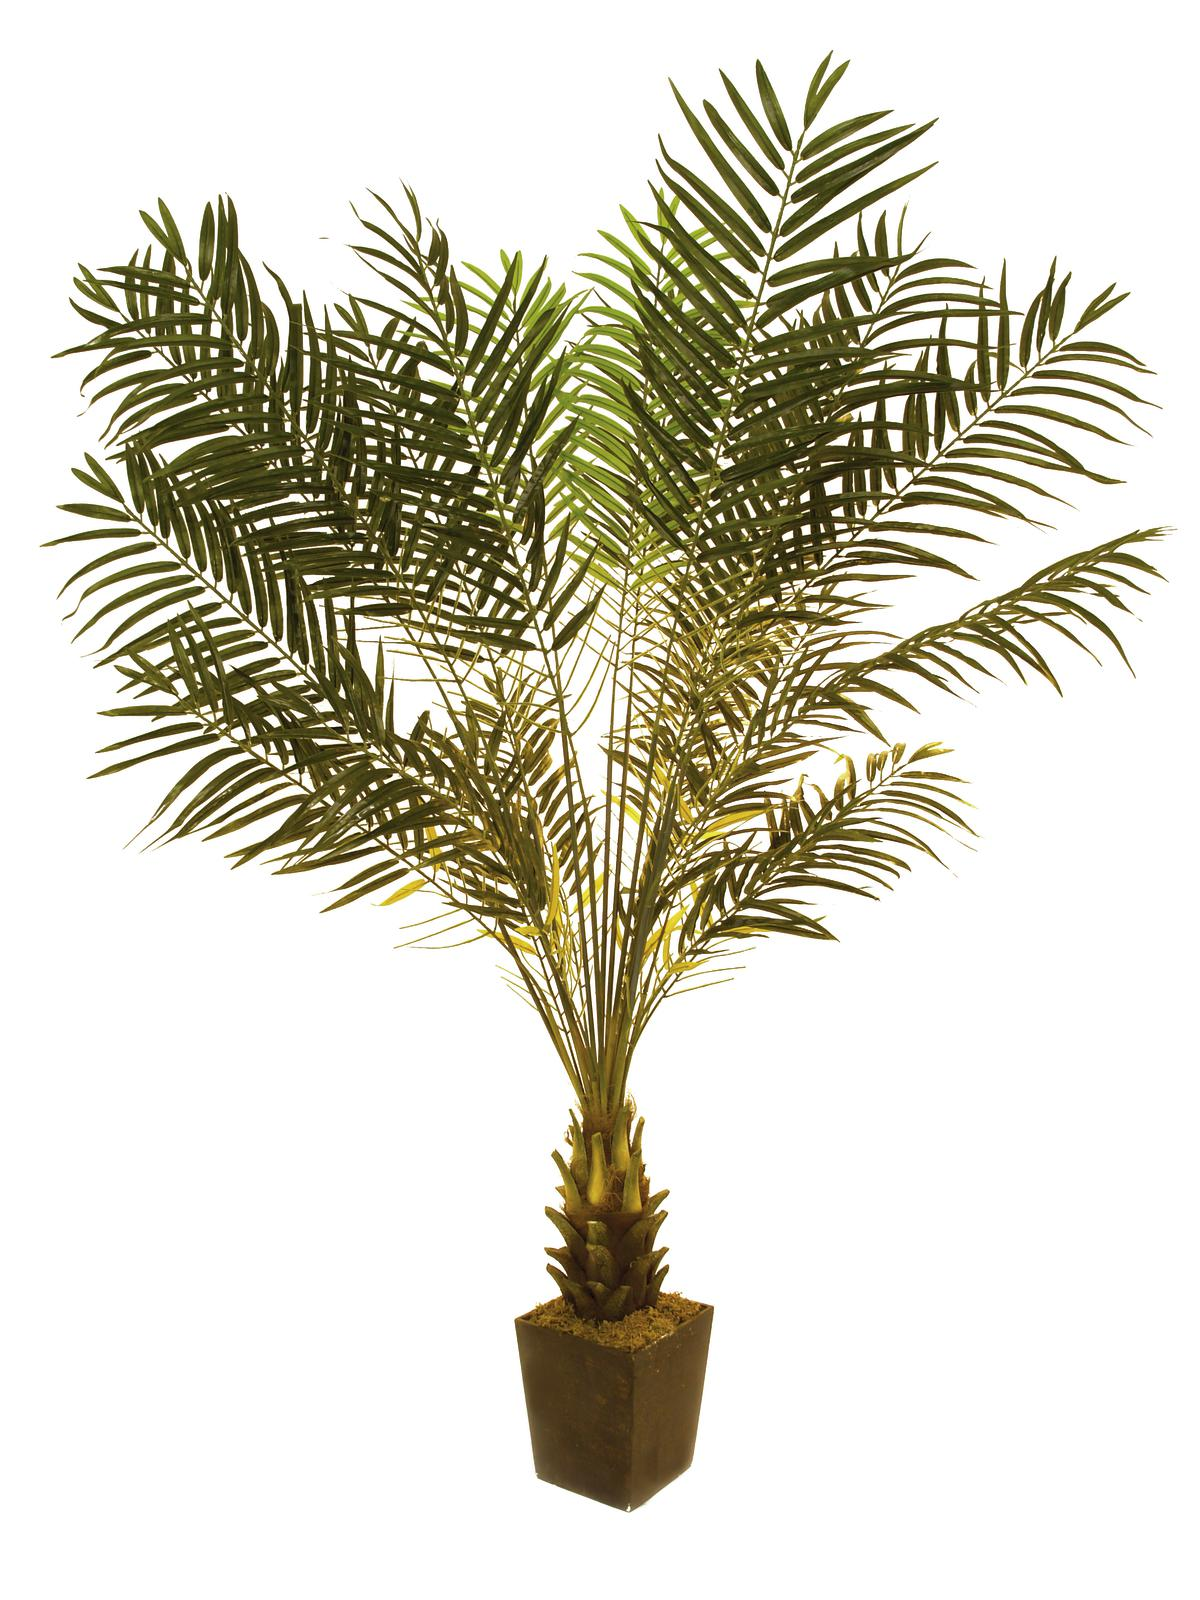 EUROPALMS pianta artificiale Cycas, 223cm